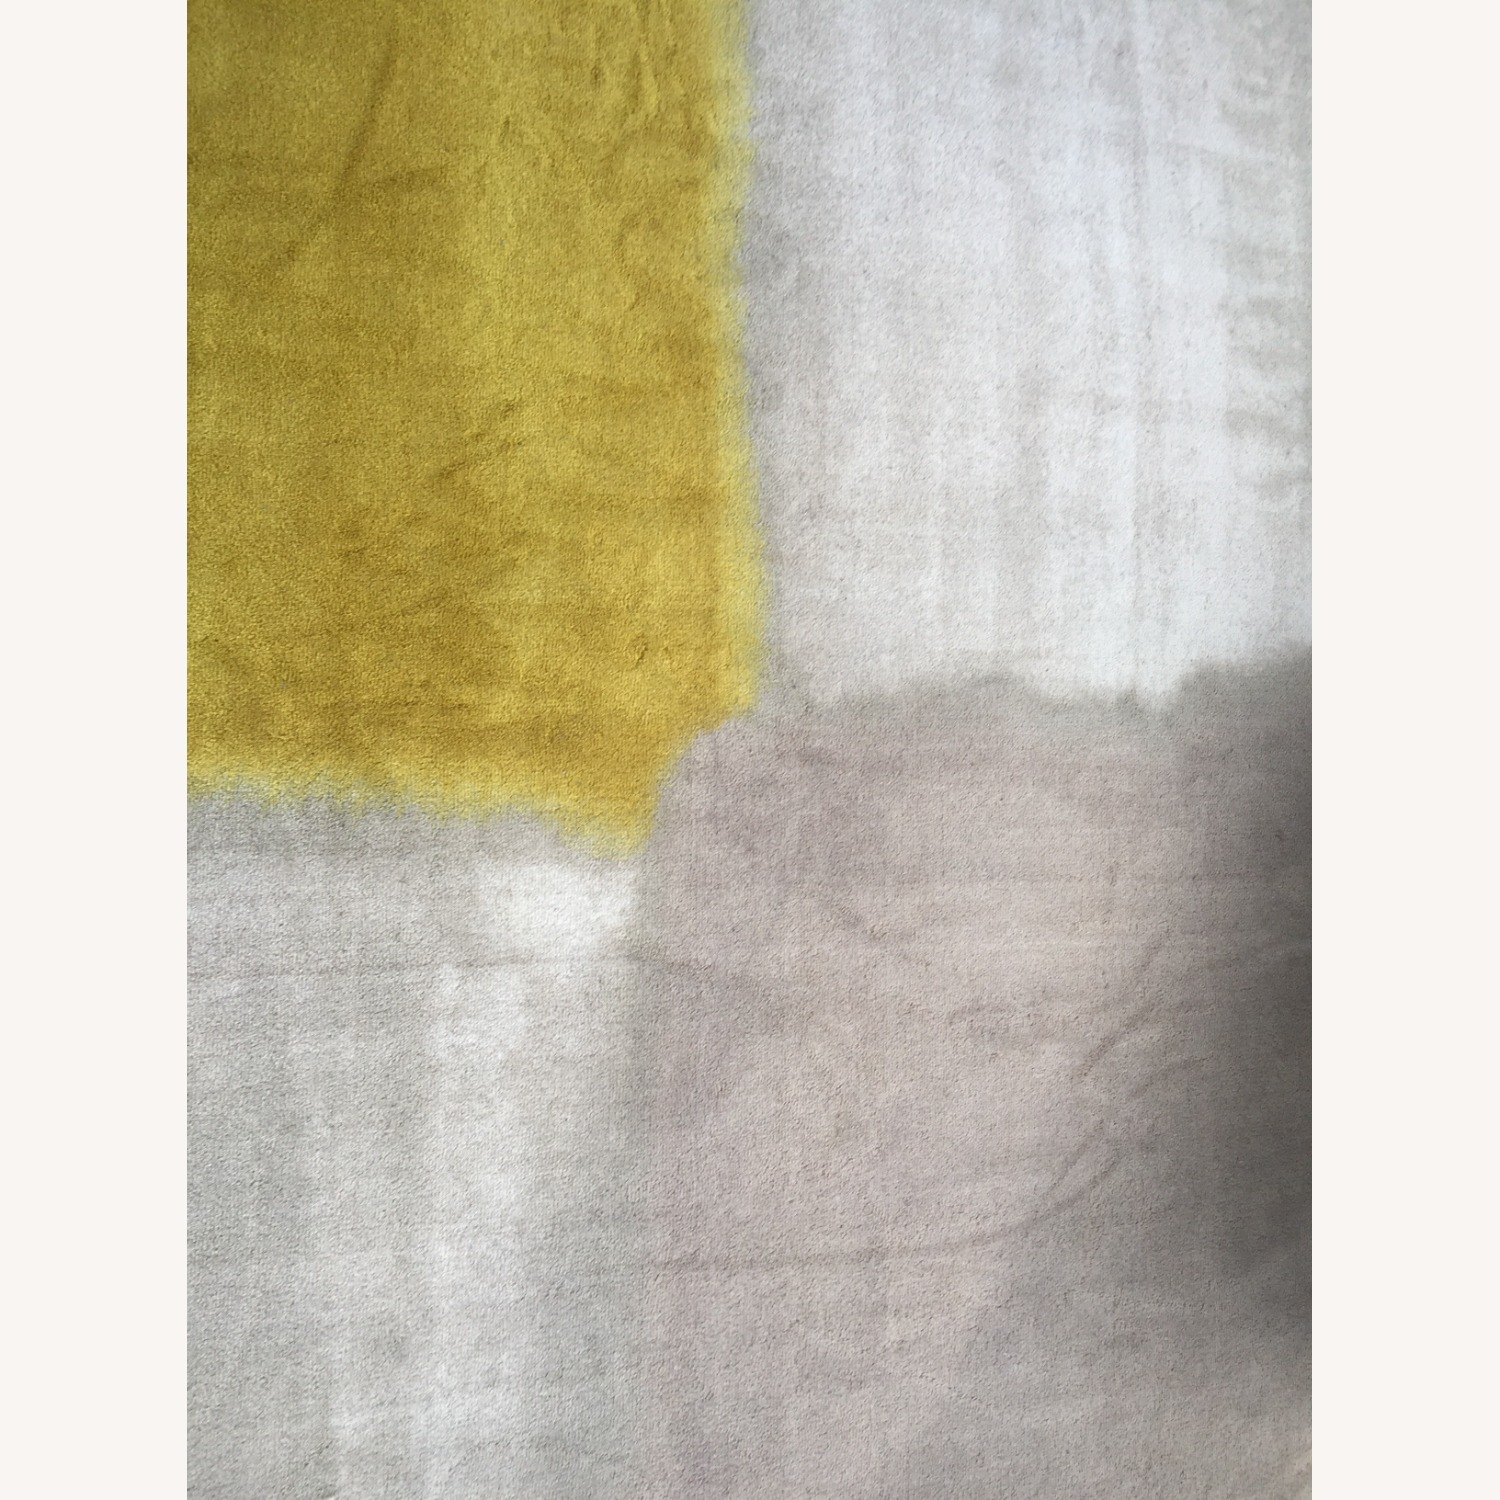 West Elm Area Rug 5' x 8' Frost Gray + Yellow - image-5